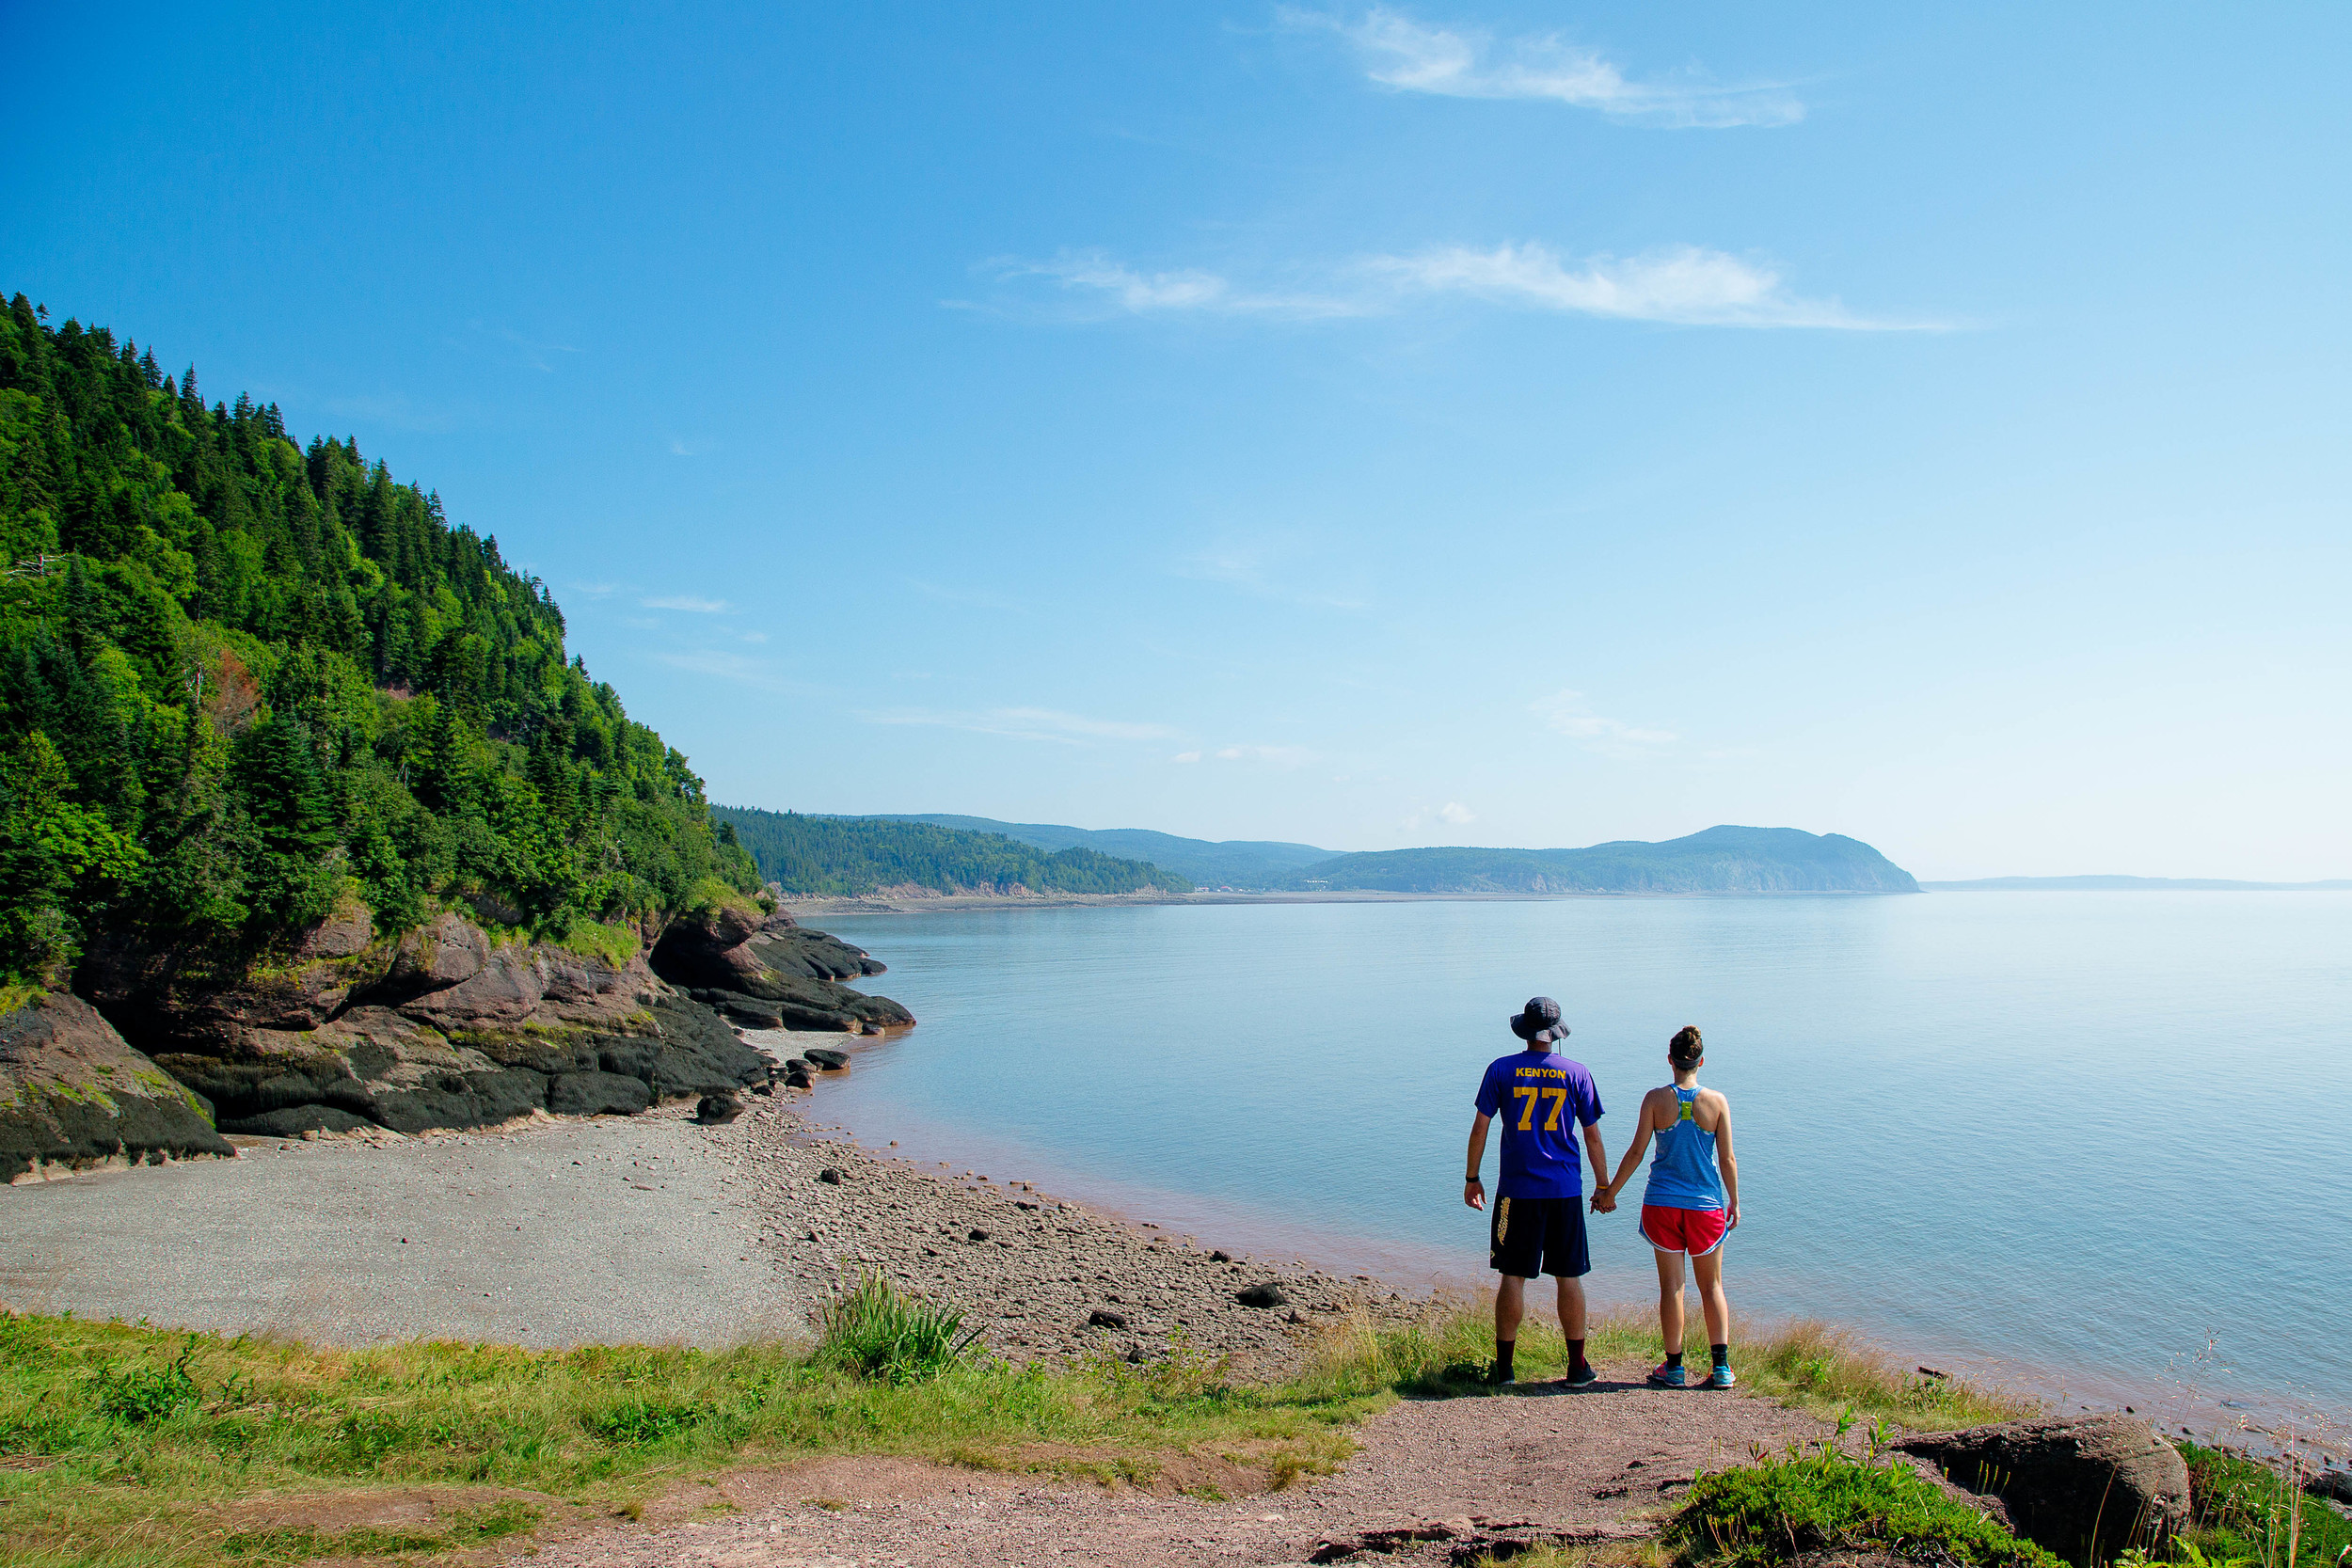 Looking over the Bay of Fundy